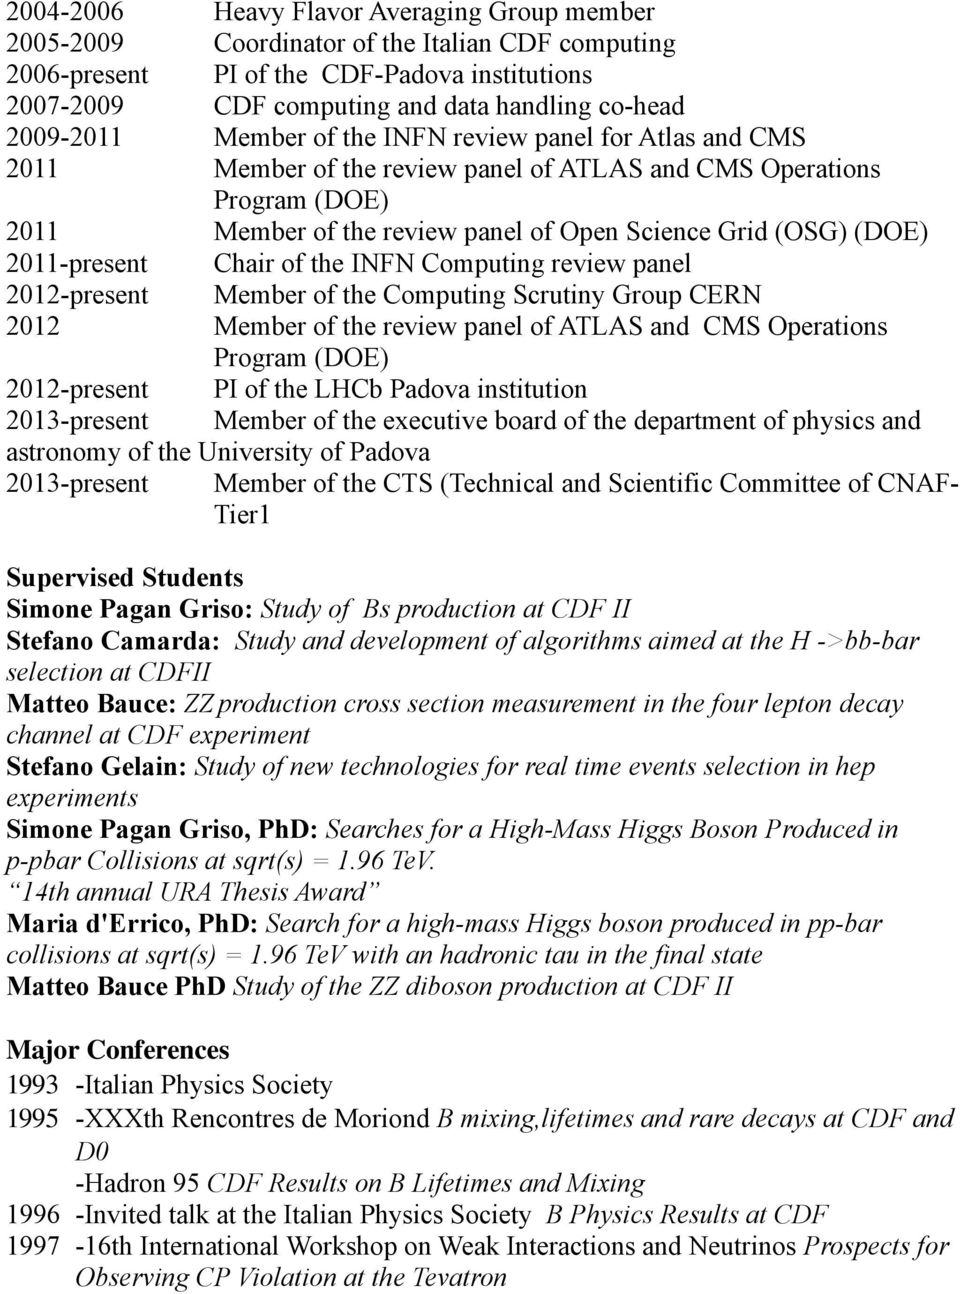 2011-present Chair of the INFN Computing review panel 2012-present Member of the Computing Scrutiny Group CERN 2012 Member of the review panel of ATLAS and CMS Operations Program (DOE) 2012-present